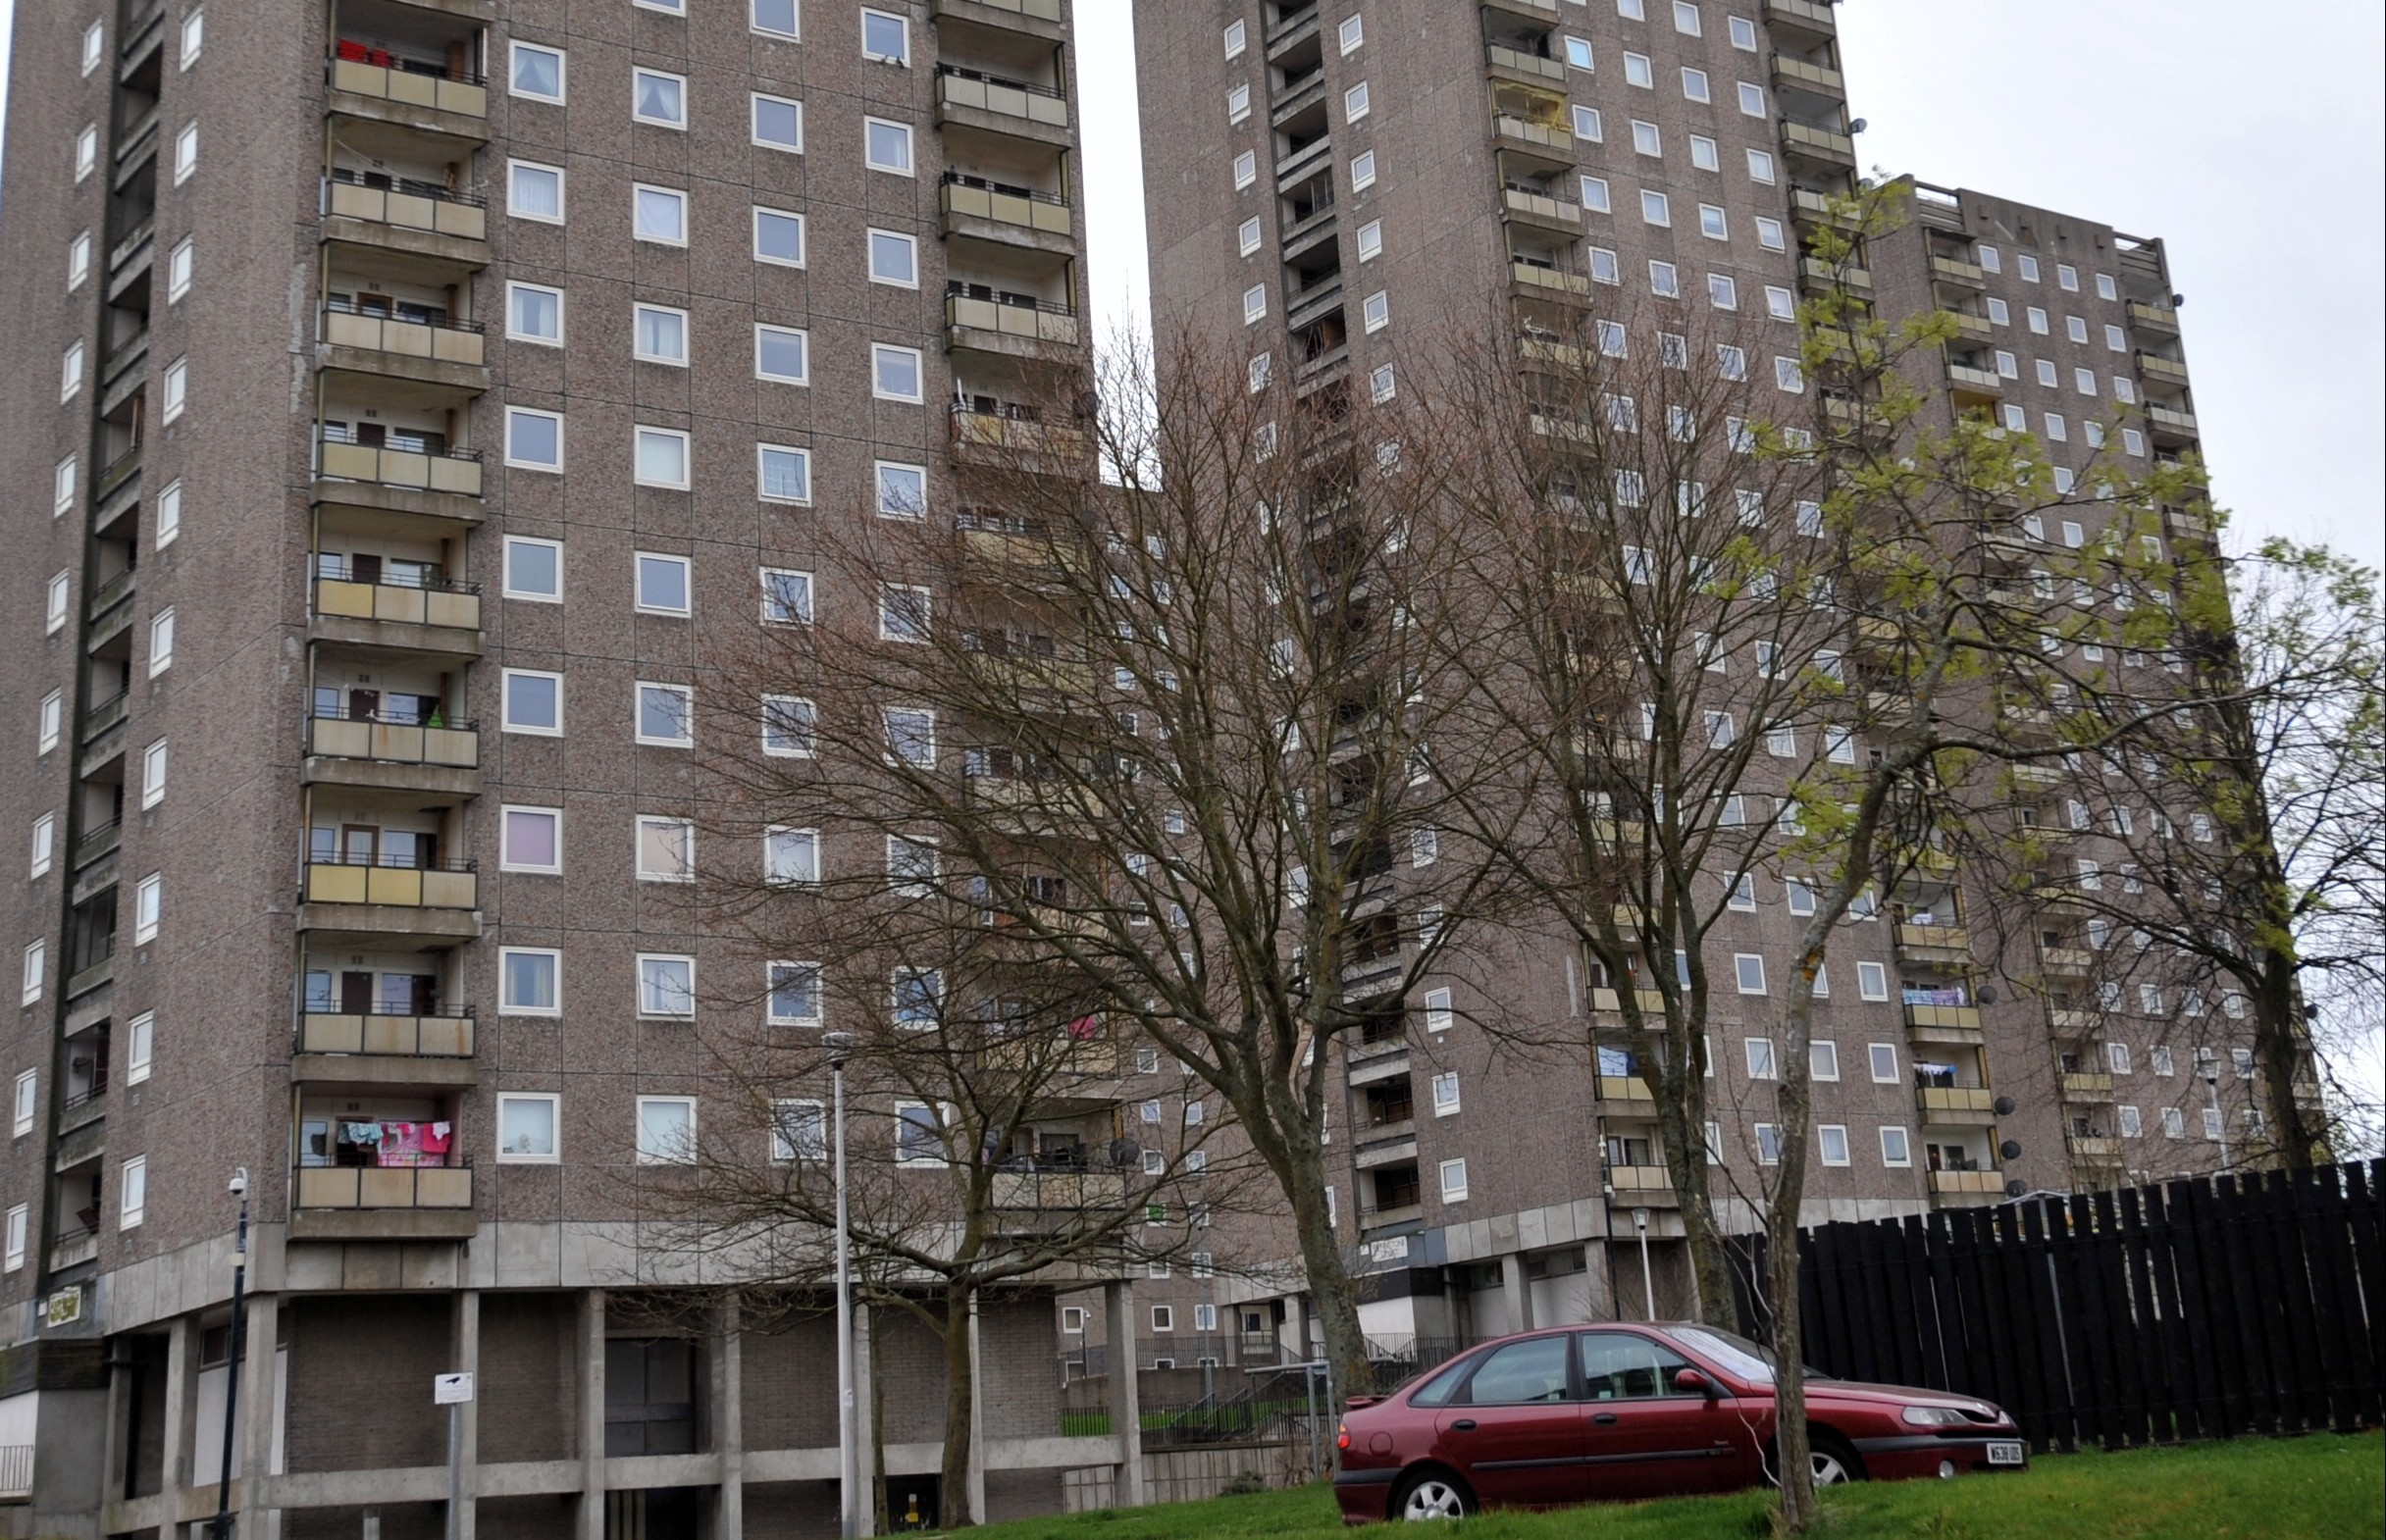 FLATS: St Machar Court, scene of the alleged incident.